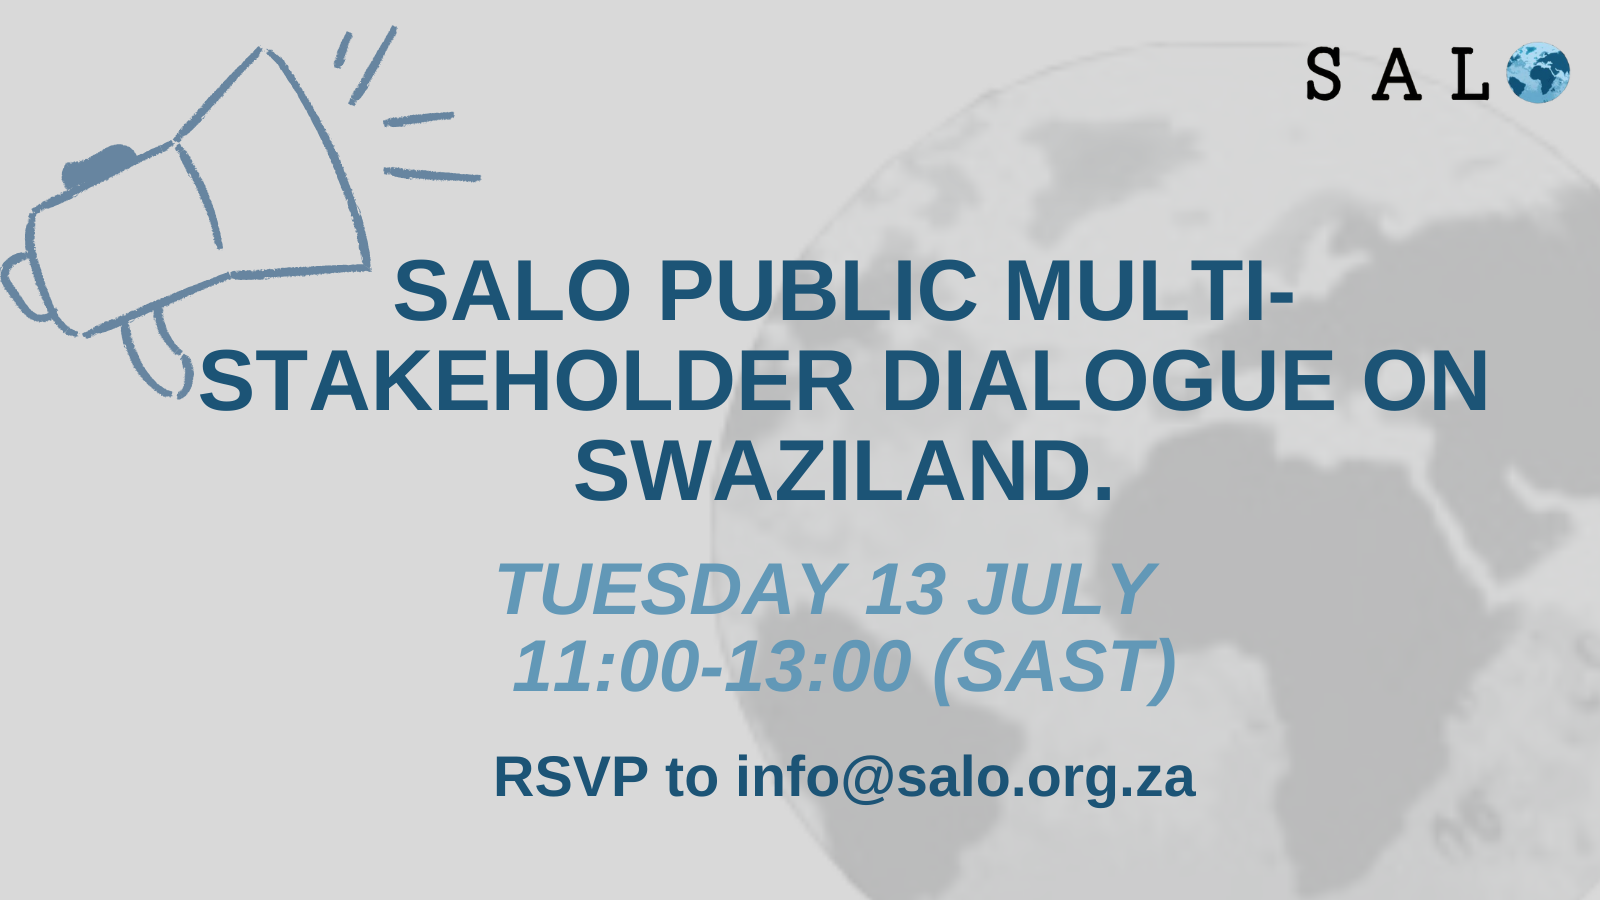 Multi-Stakeholder Dialogue: On the 13th of July at 11am